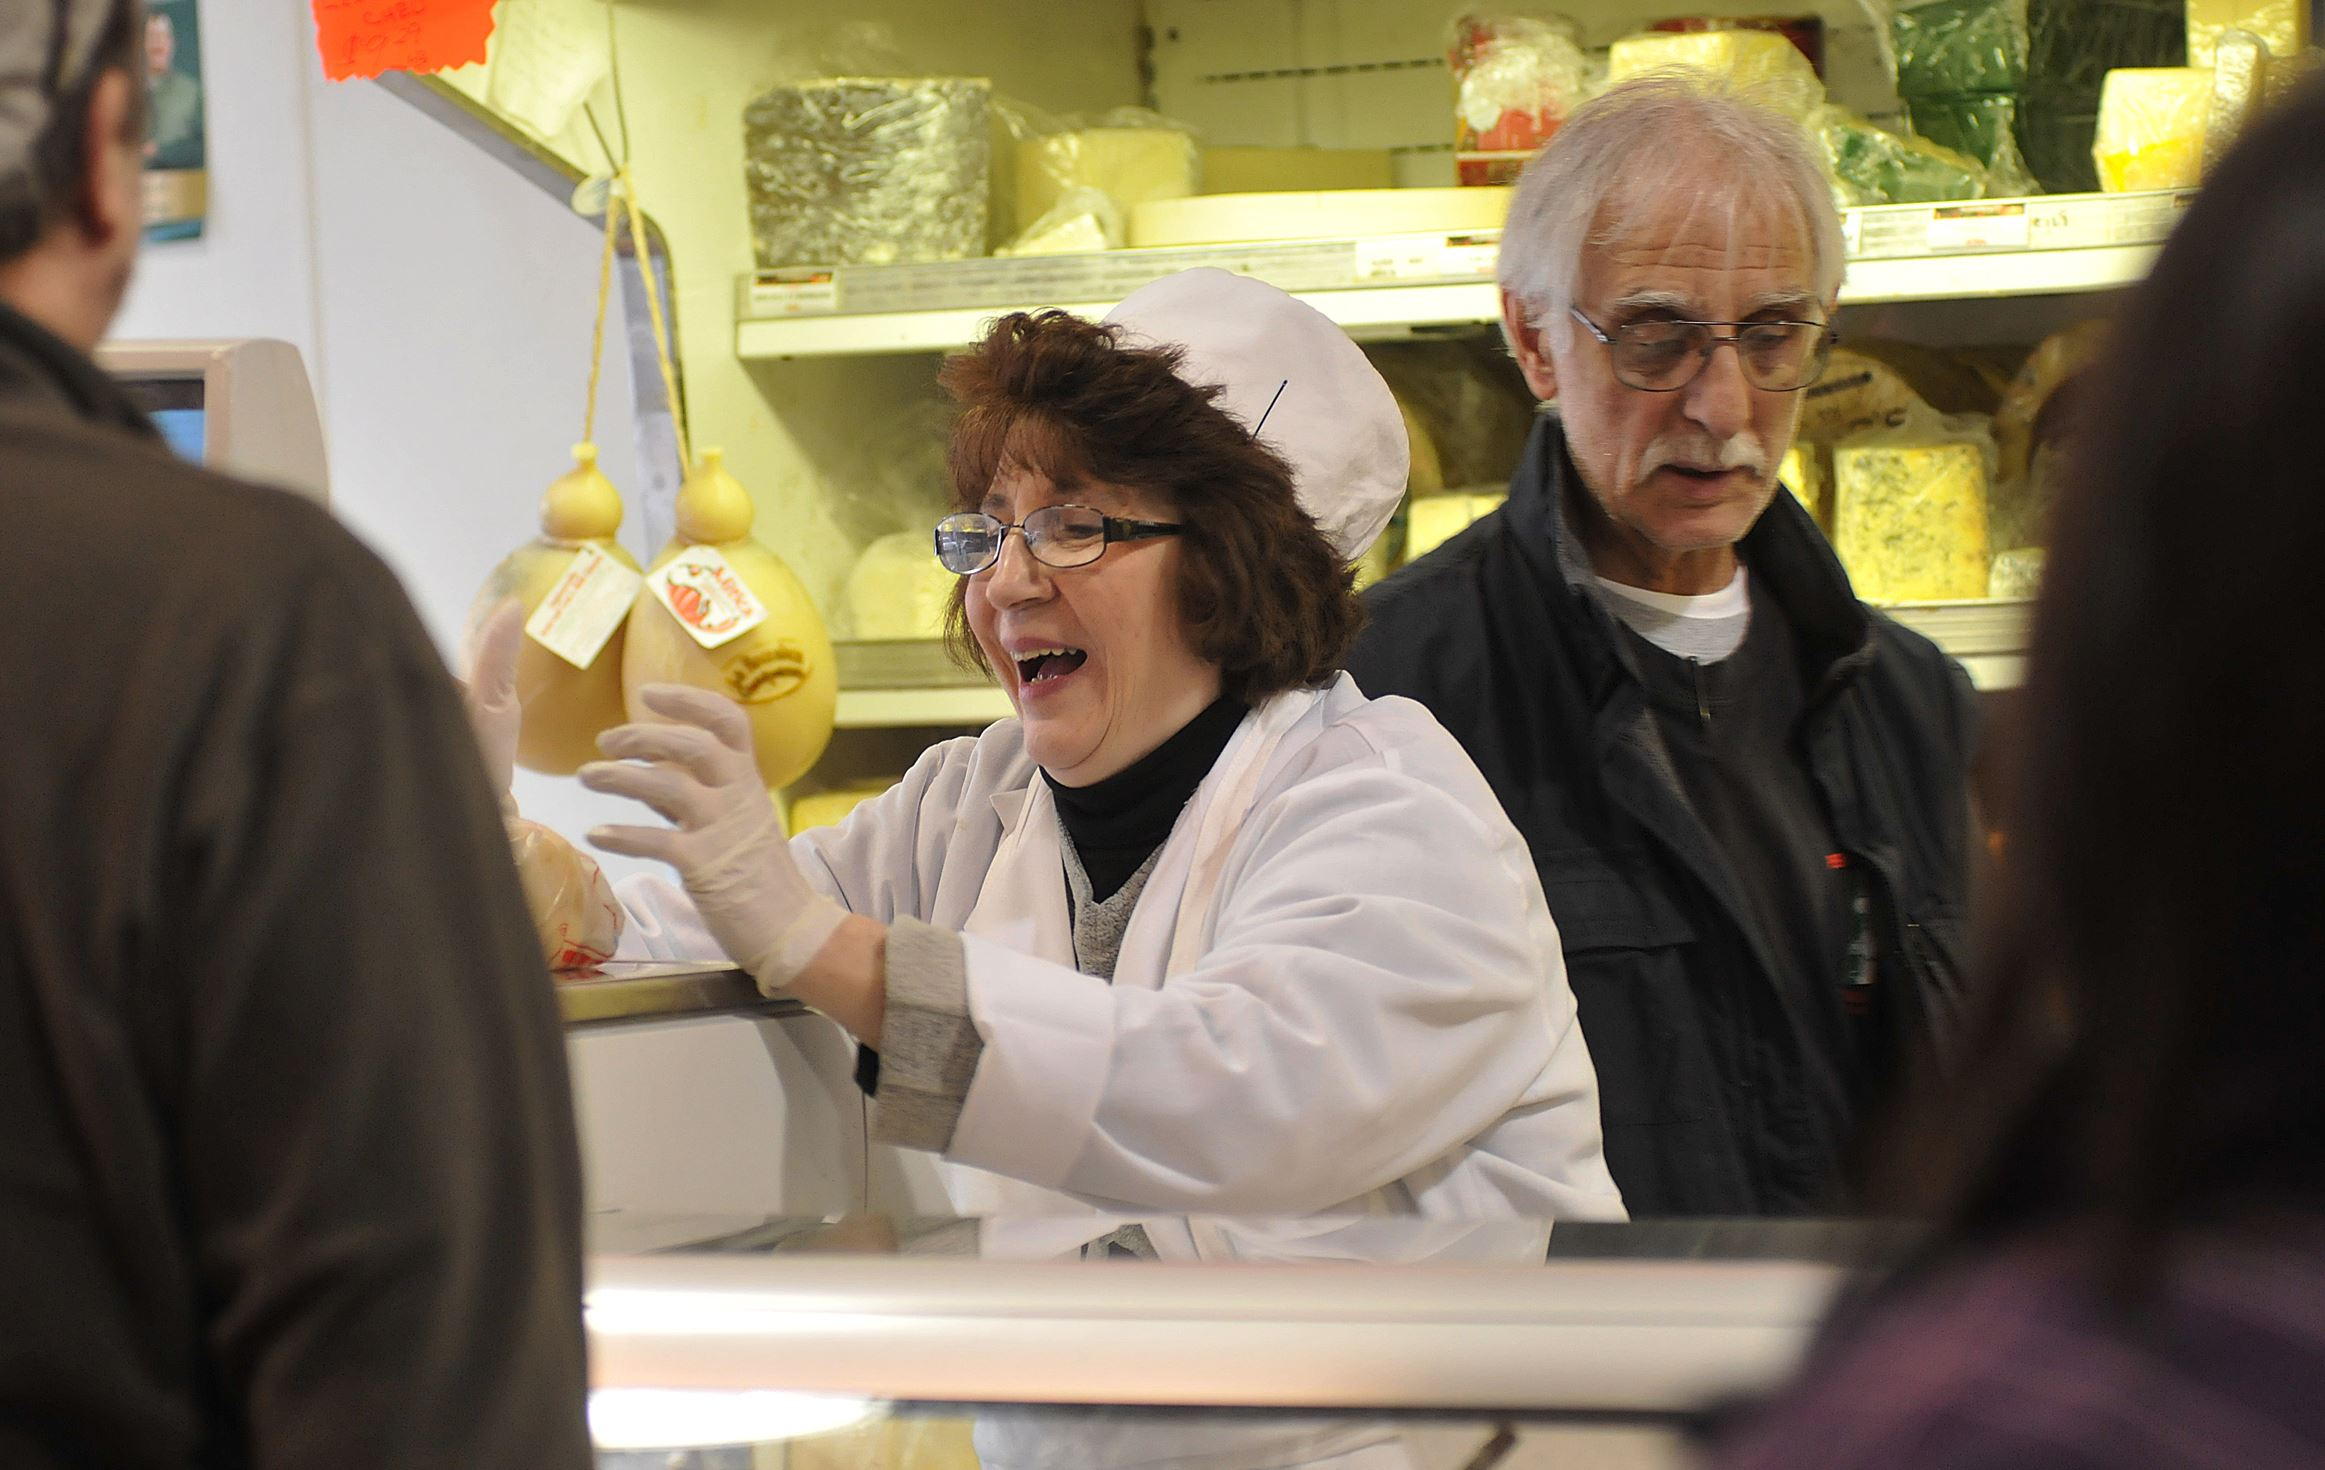 Dearheart sale Carol Pascuzzi, cheesemonger at Penn Mac since 1984, weighs a piece of cheese for a customer. At right is cheesemonger Nick Pascuzzi, Carol's husband.